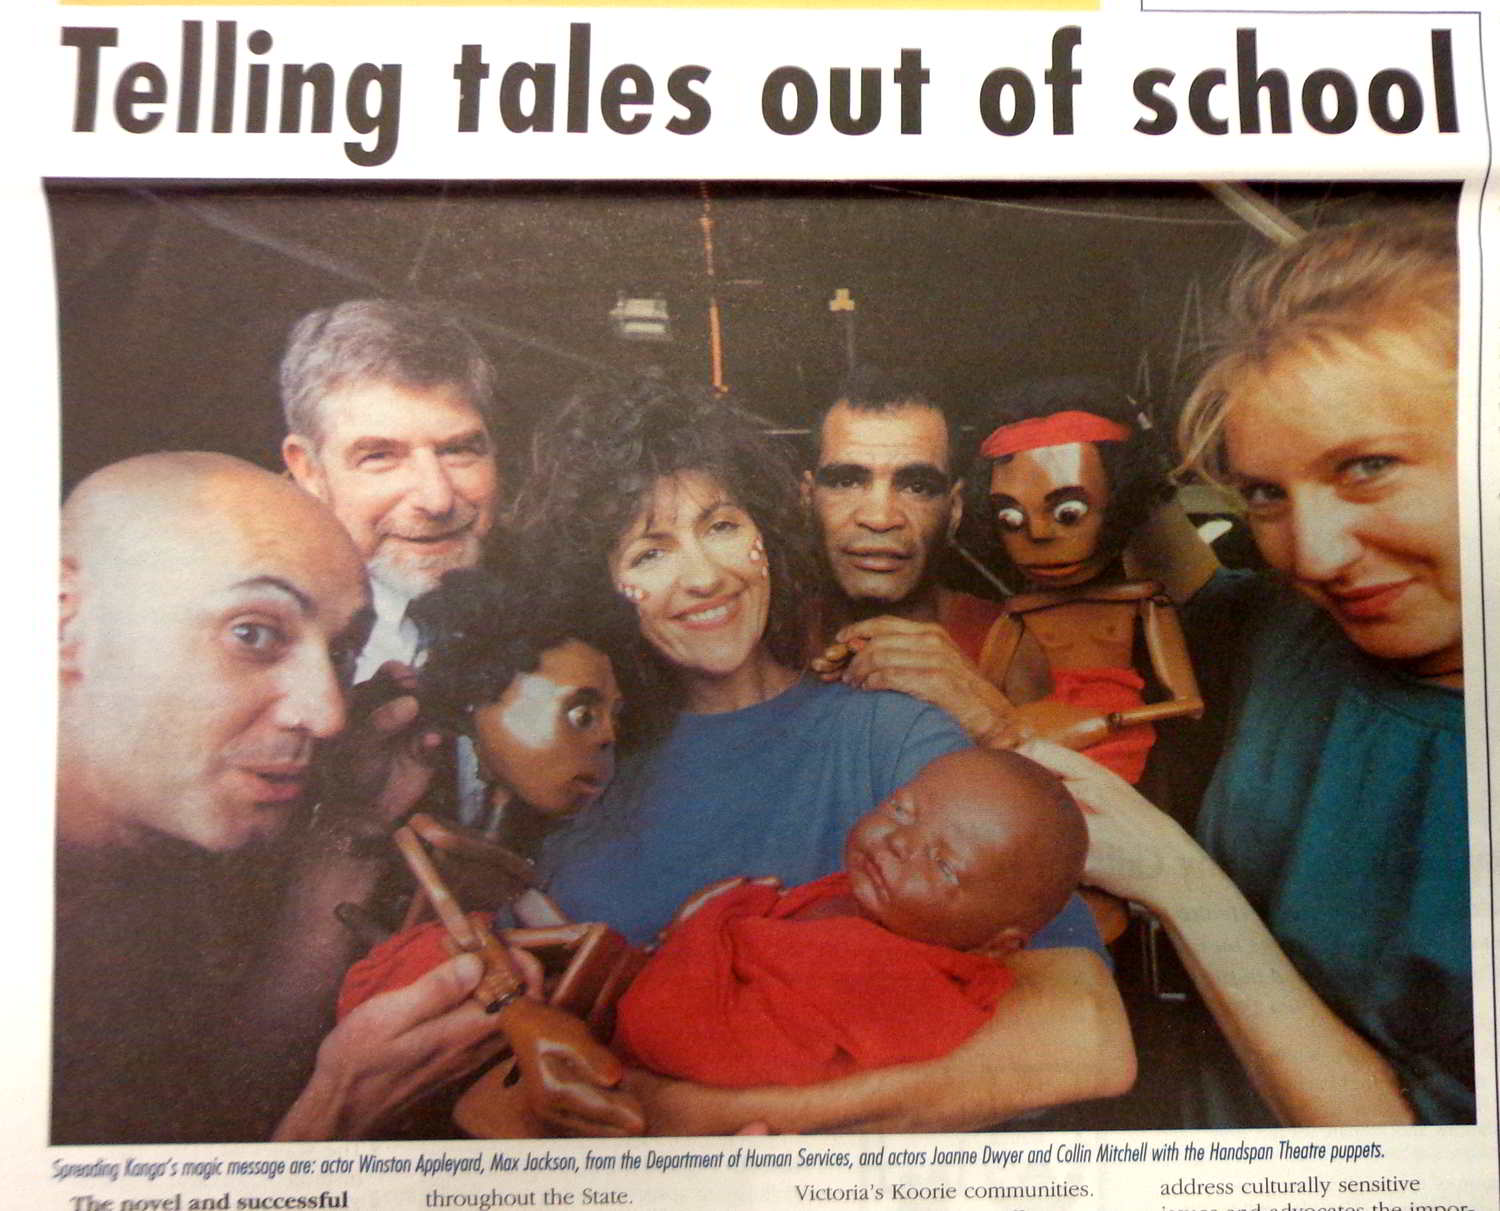 TIE with Koori Health Victoria newspaper clipping of mixed indigenous and anglo-australian cast and puppets